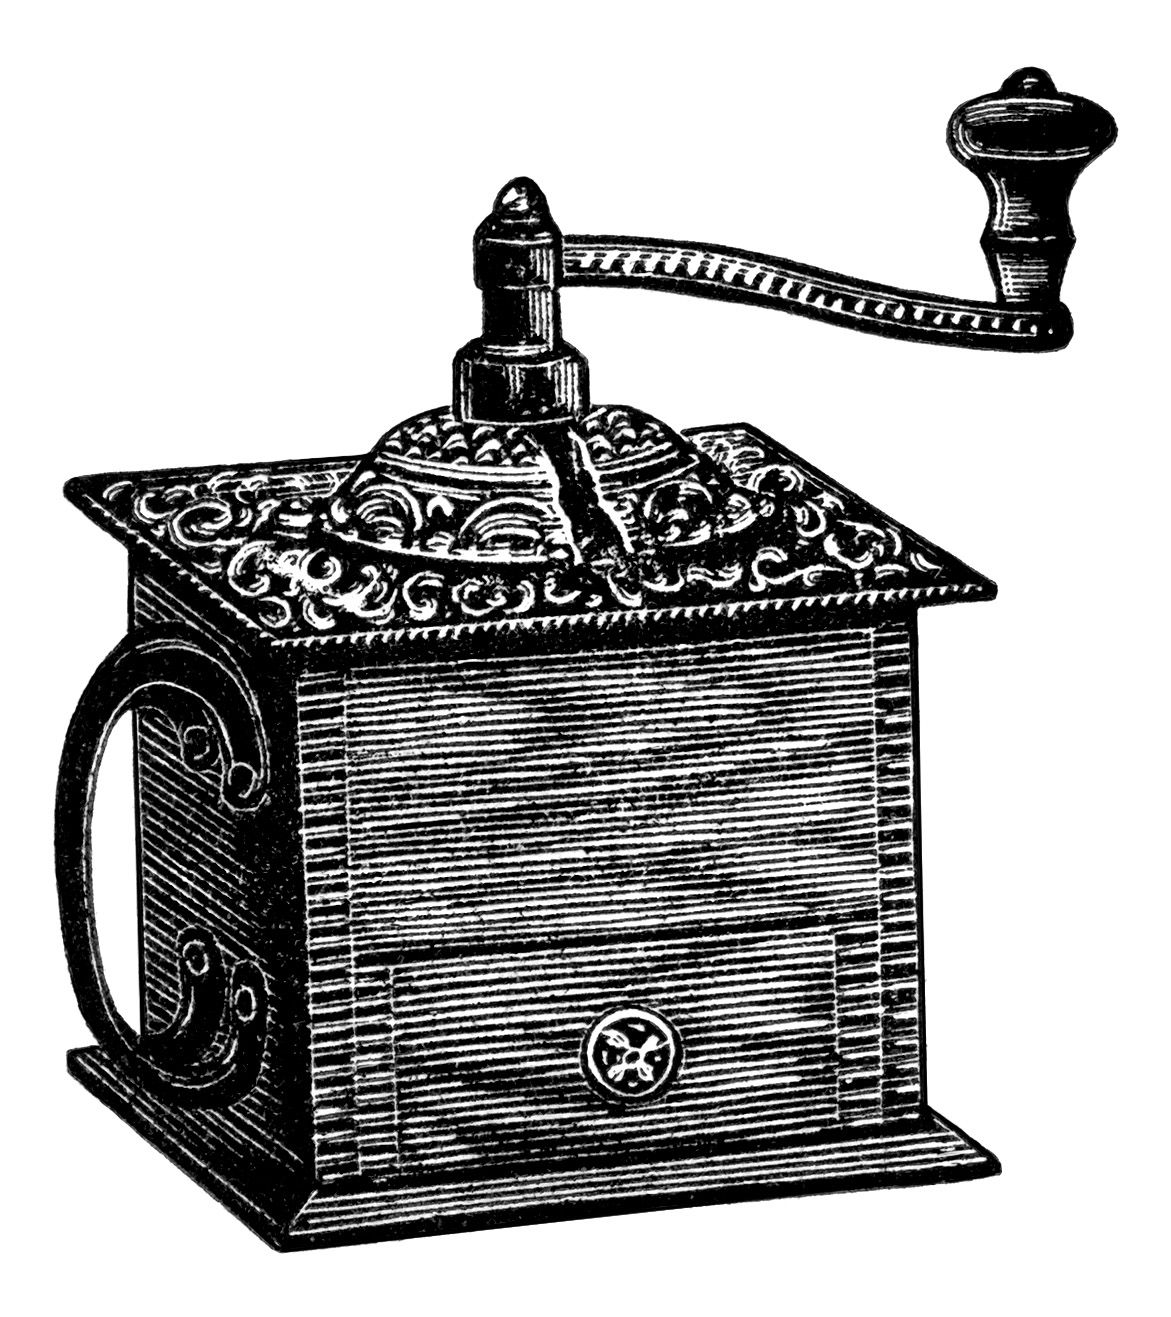 92 best images about Coffee Grinders on Pinterest | Golden ...  |Coffee Grinders Antique Label